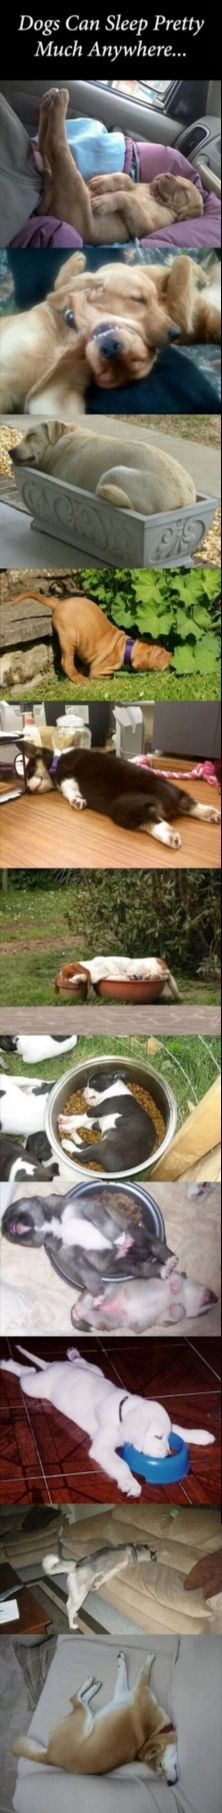 Dogs falling asleep in the funniest and cutest ways :)